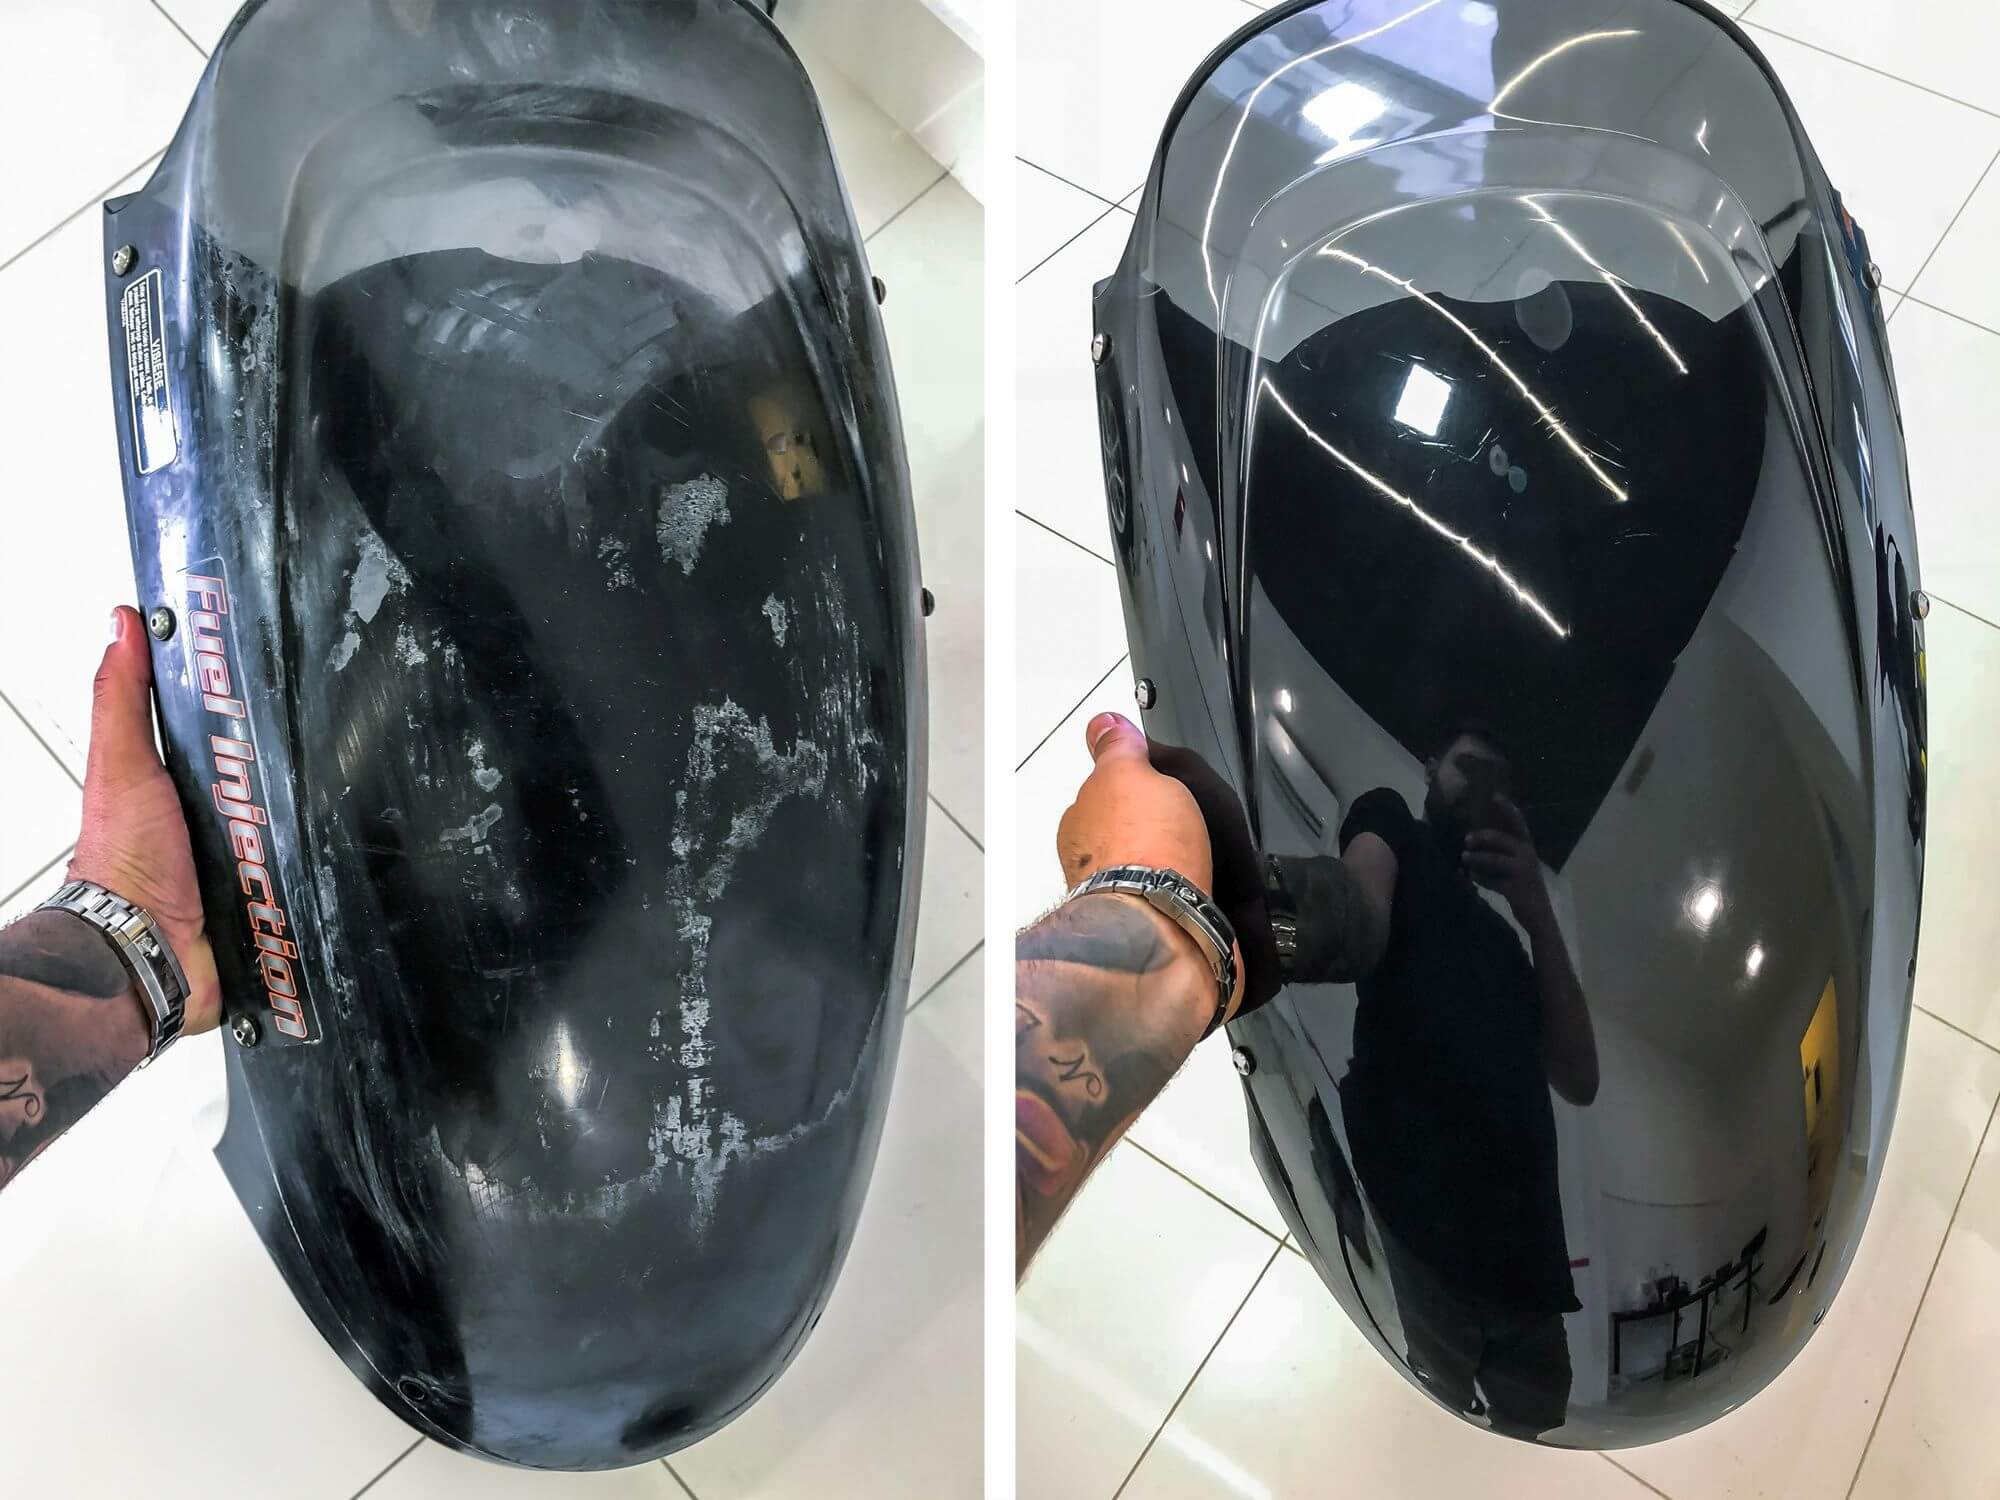 DK gallery photo 15 polished helmet before / after